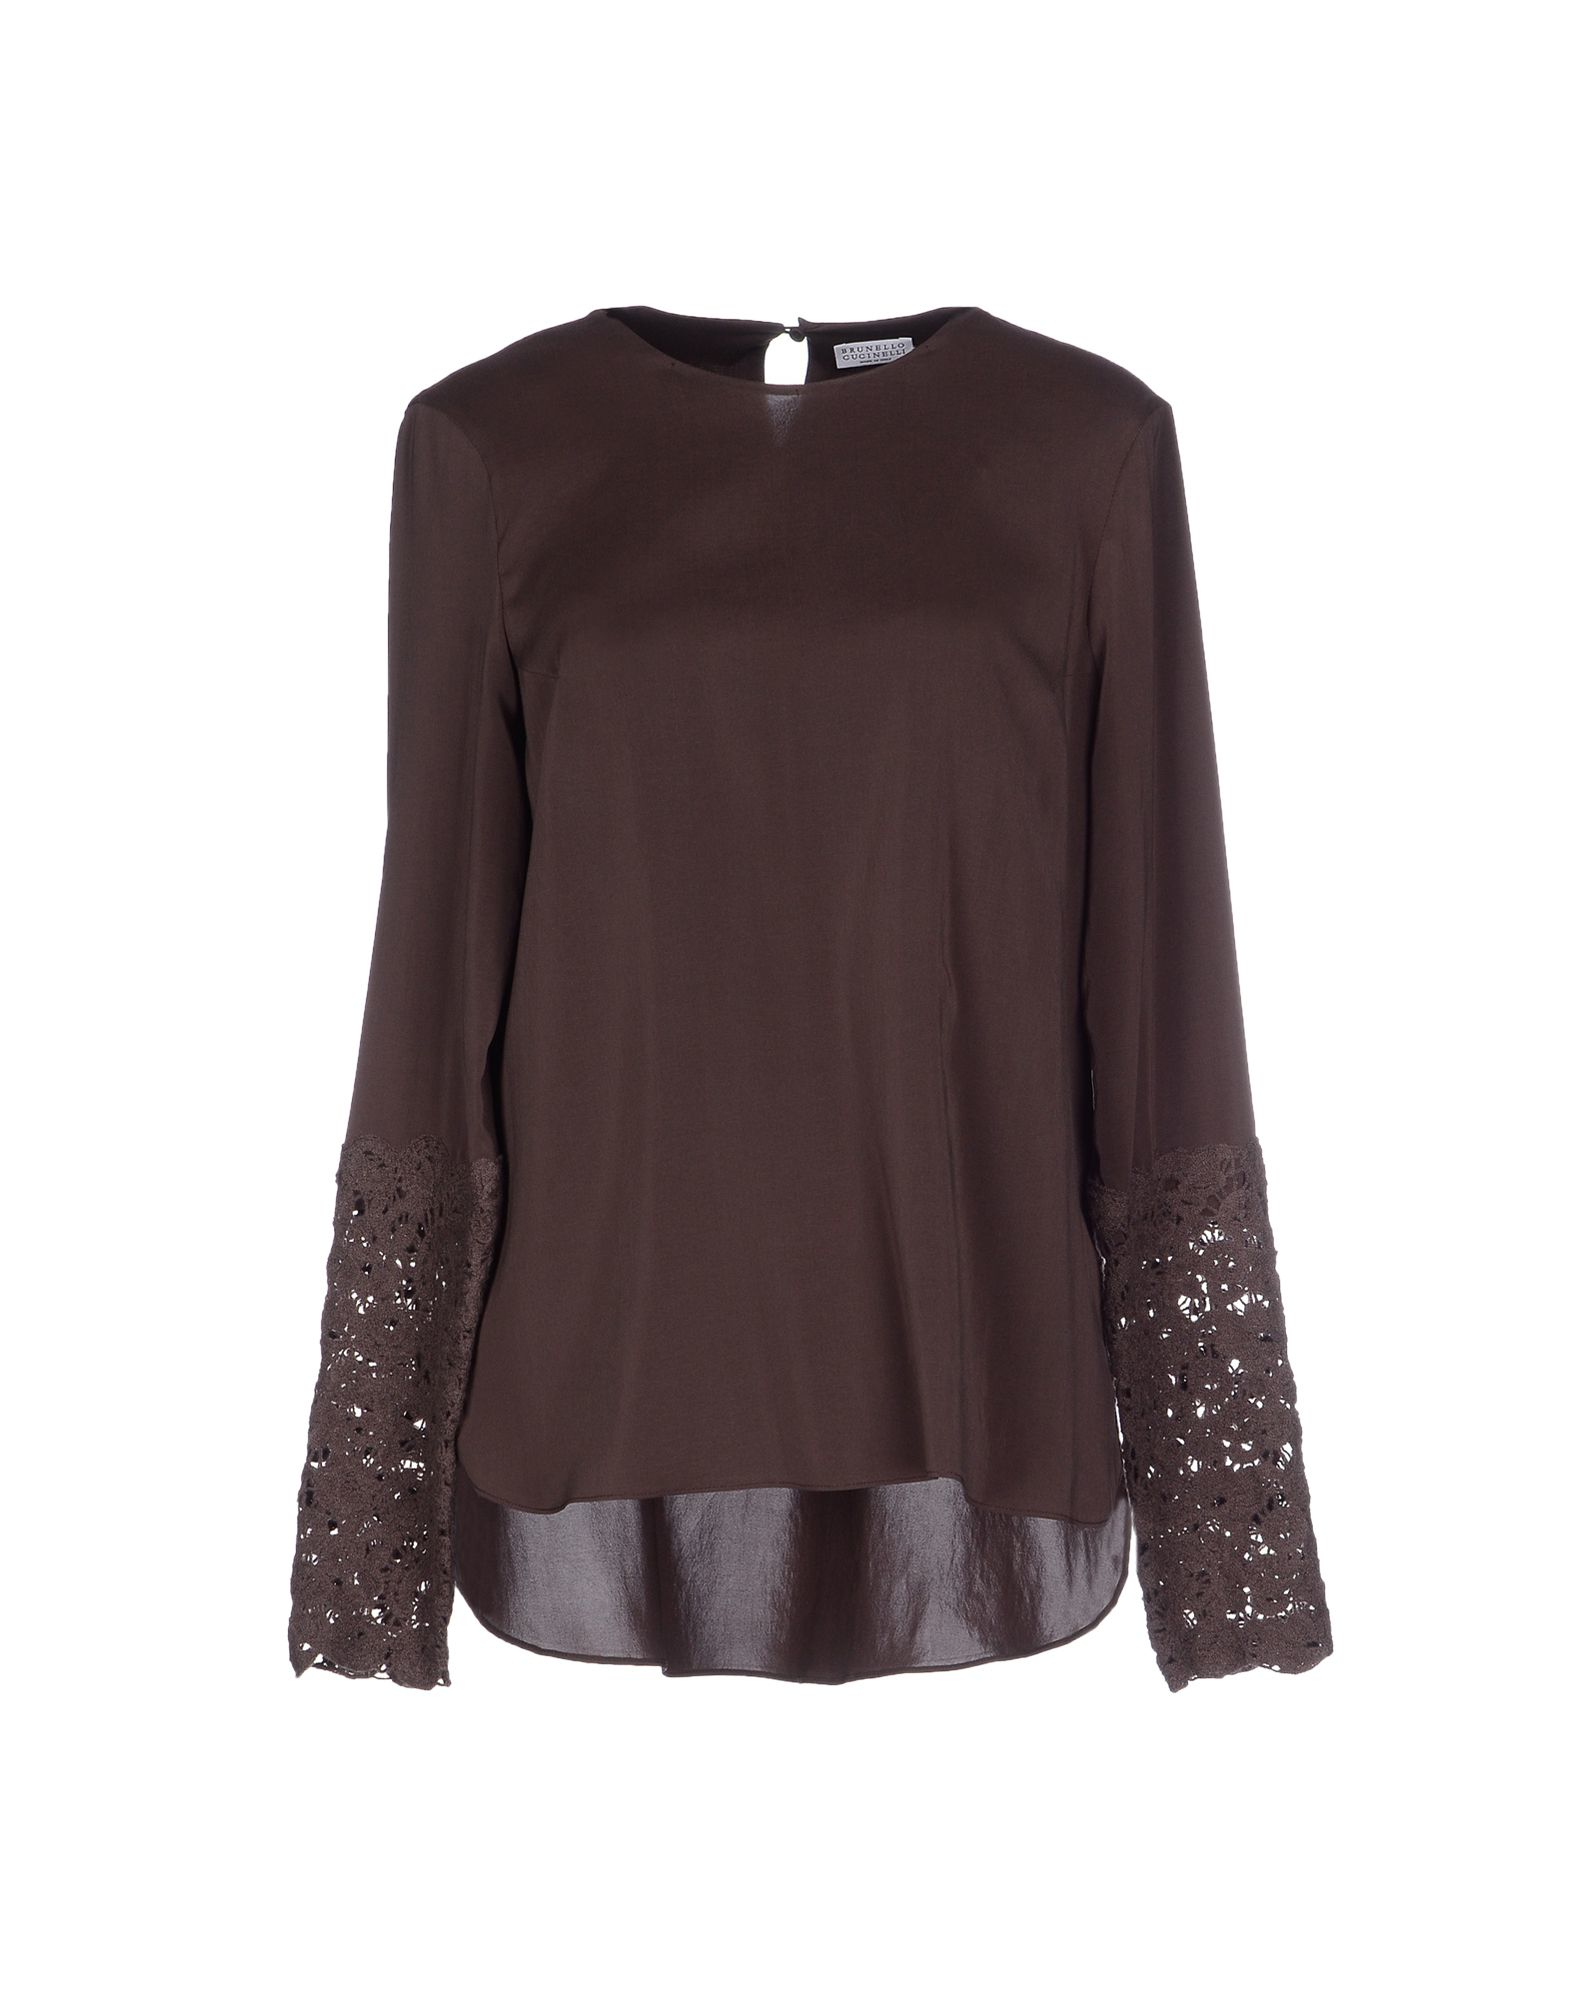 Womens Brown Blouse 81